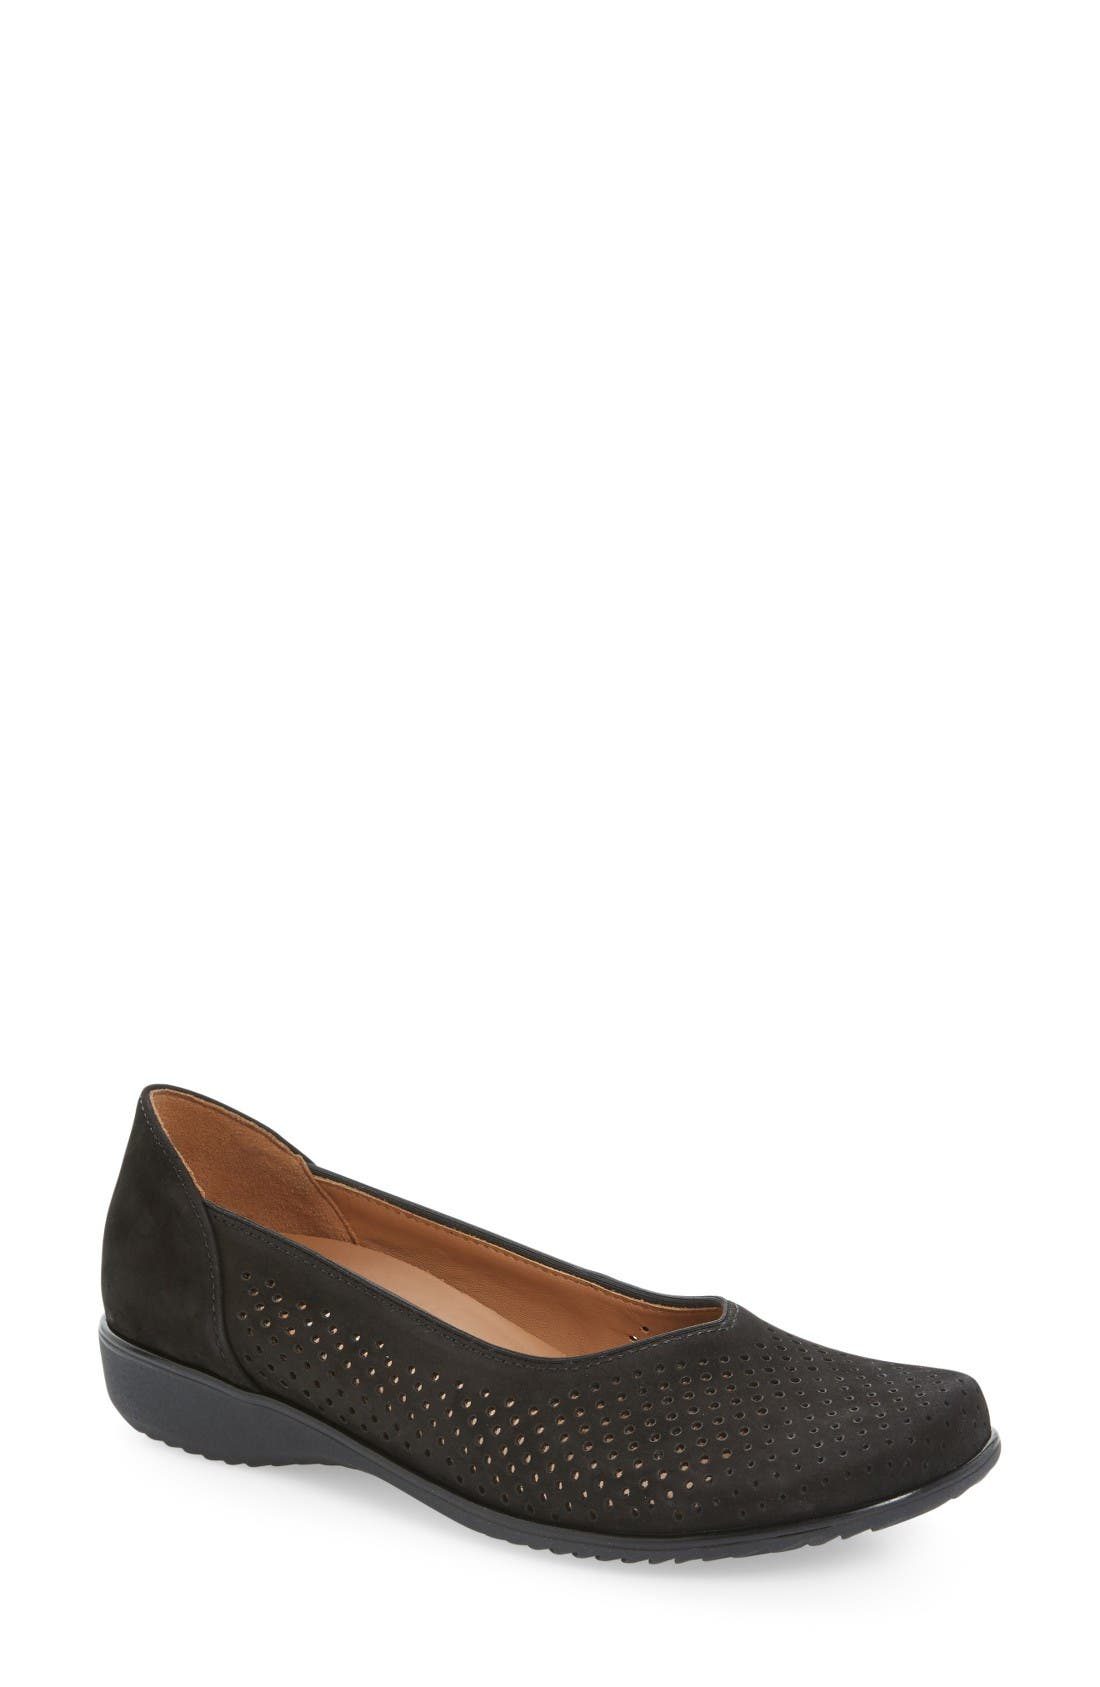 Avril Perforated Flat,                         Main,                         color, Black